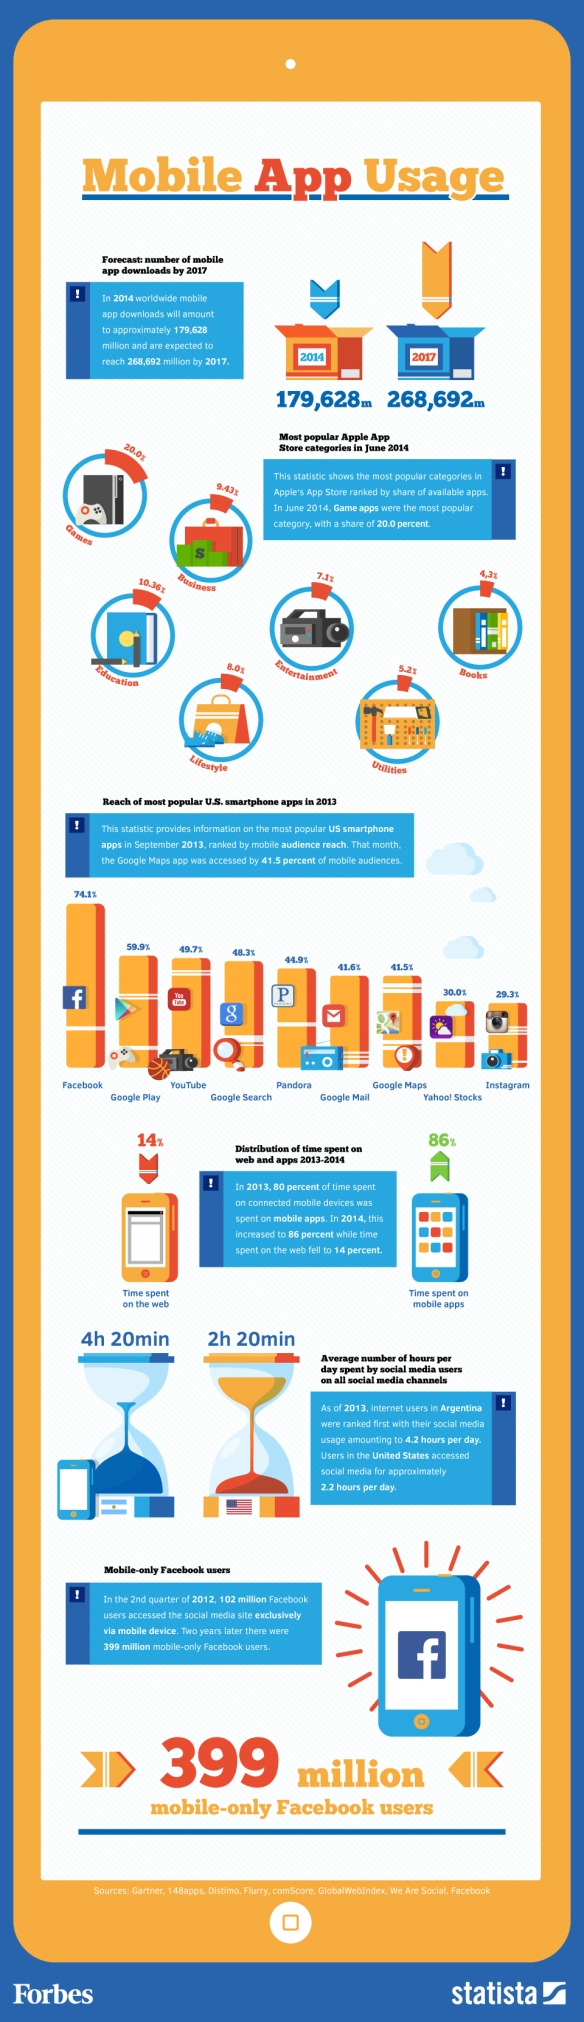 Giant-social-apps_Forbes